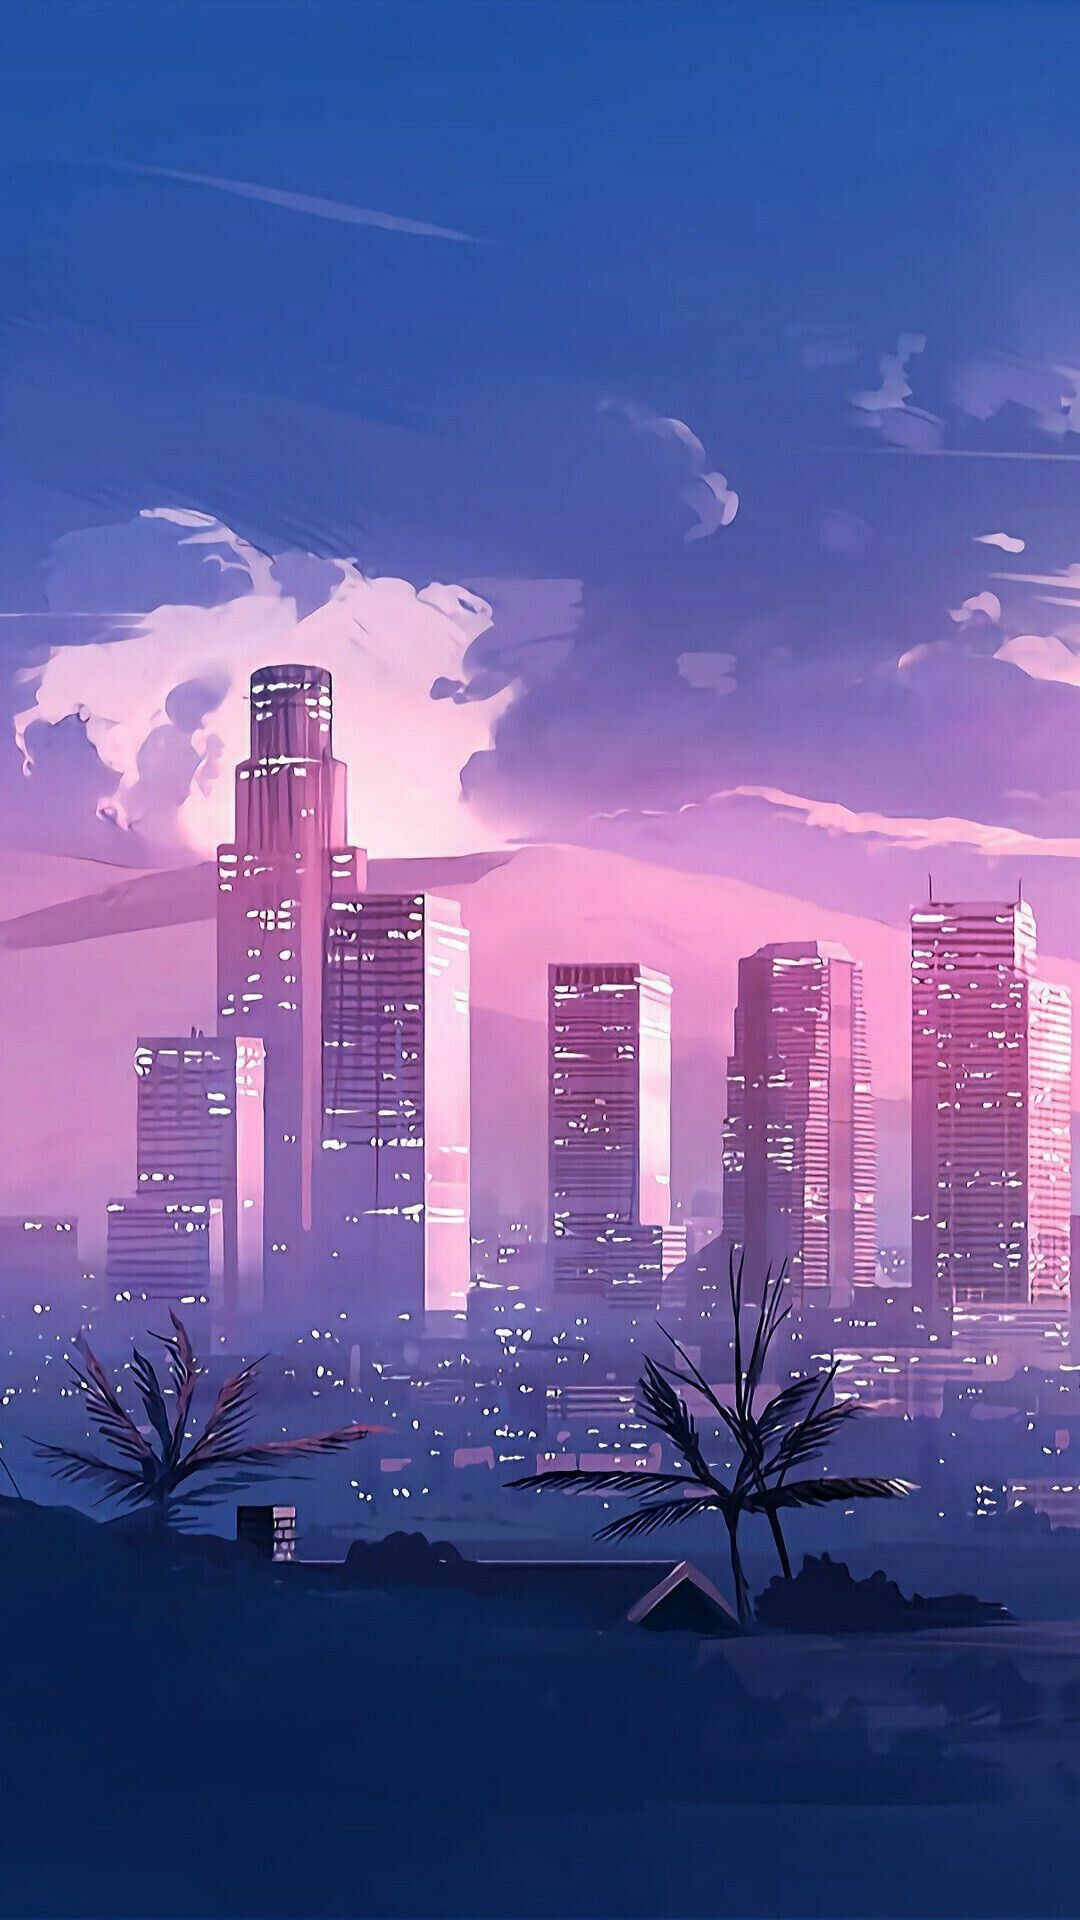 Anime Aesthetic Wallpaper Phone Anime Wallpapers